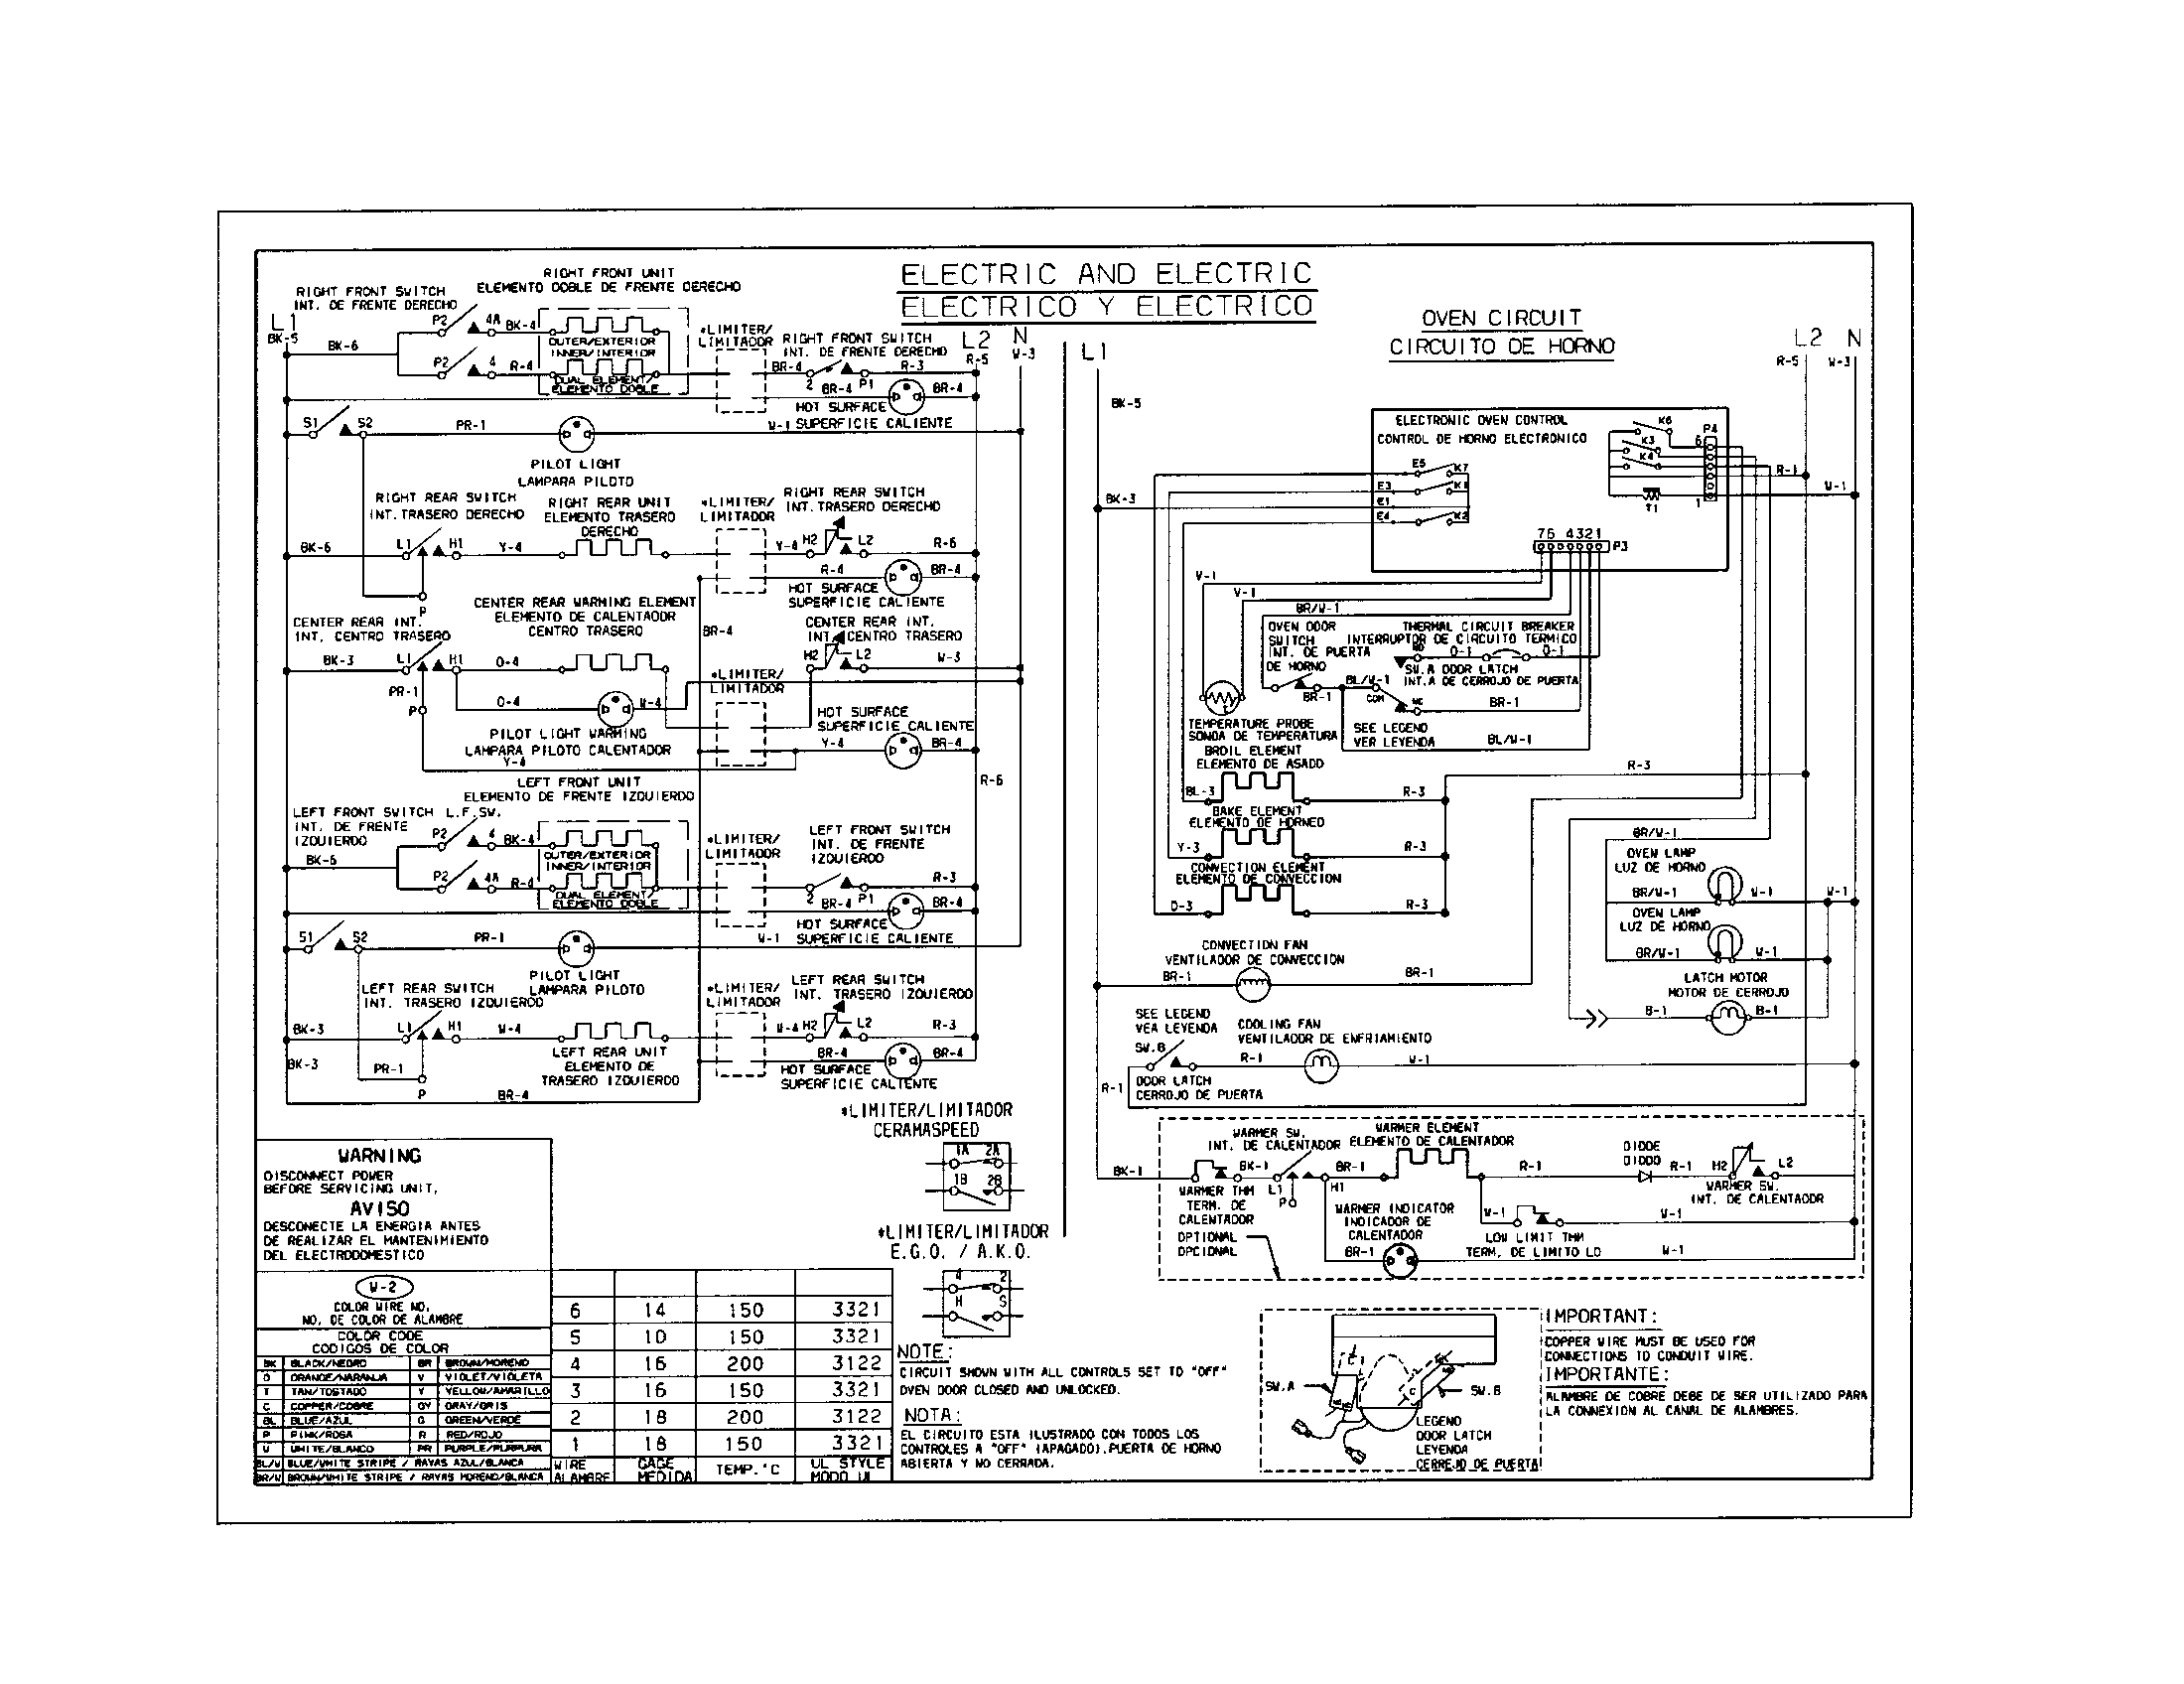 wiring diagram for gas top stove circuit diagram symbols u2022 rh blogospheree com